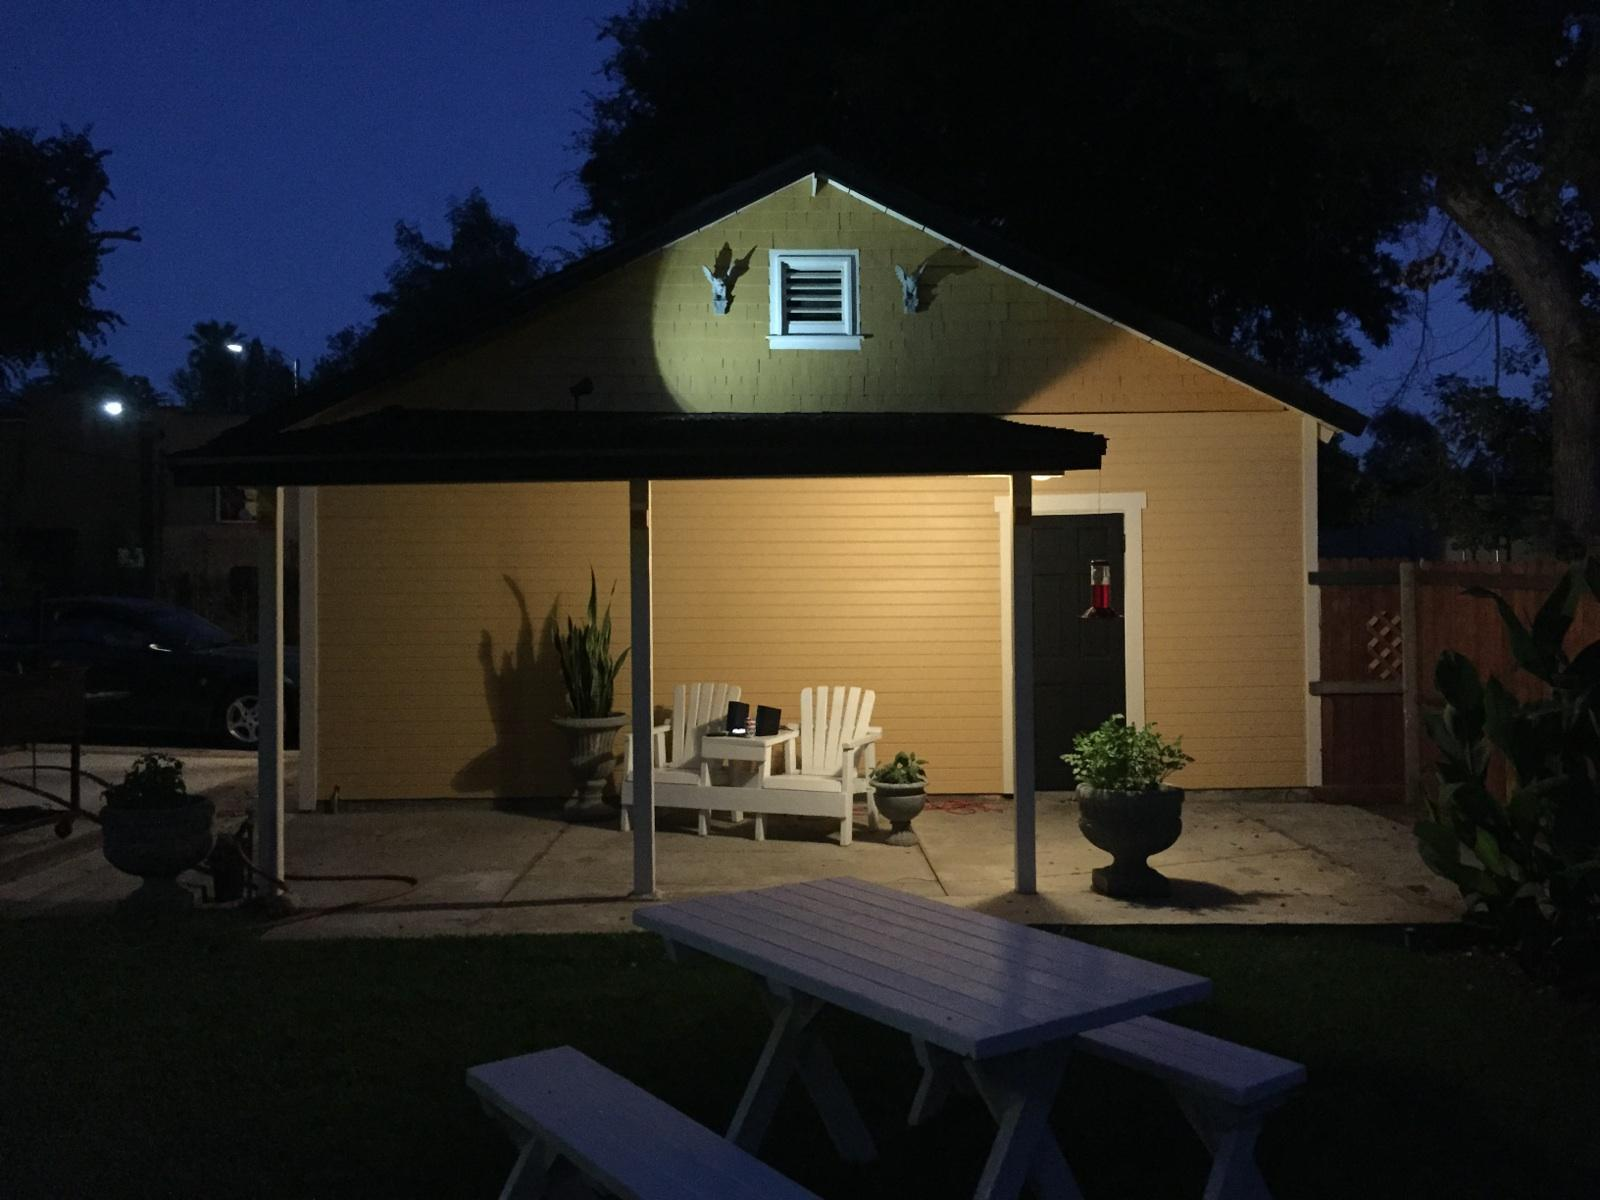 The Garage at Night